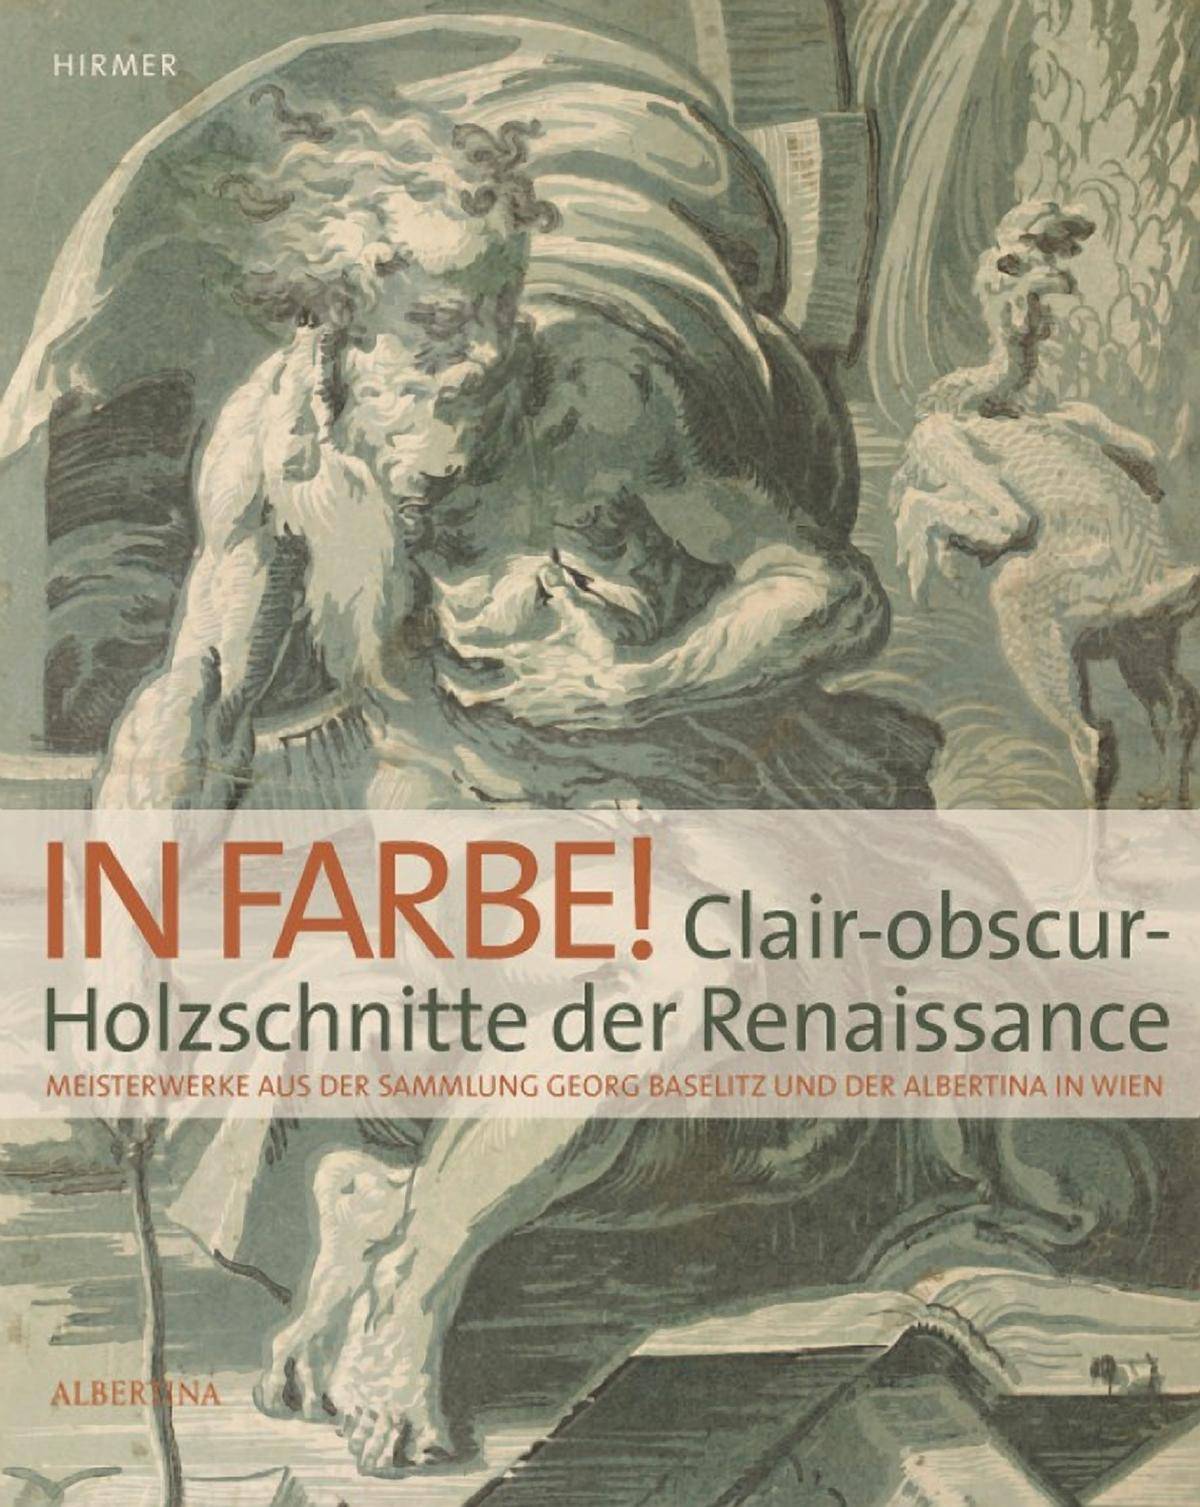 In Farbe! Clair Obscur Holzschnitte Der Renaissance. Exhibition Catalogue